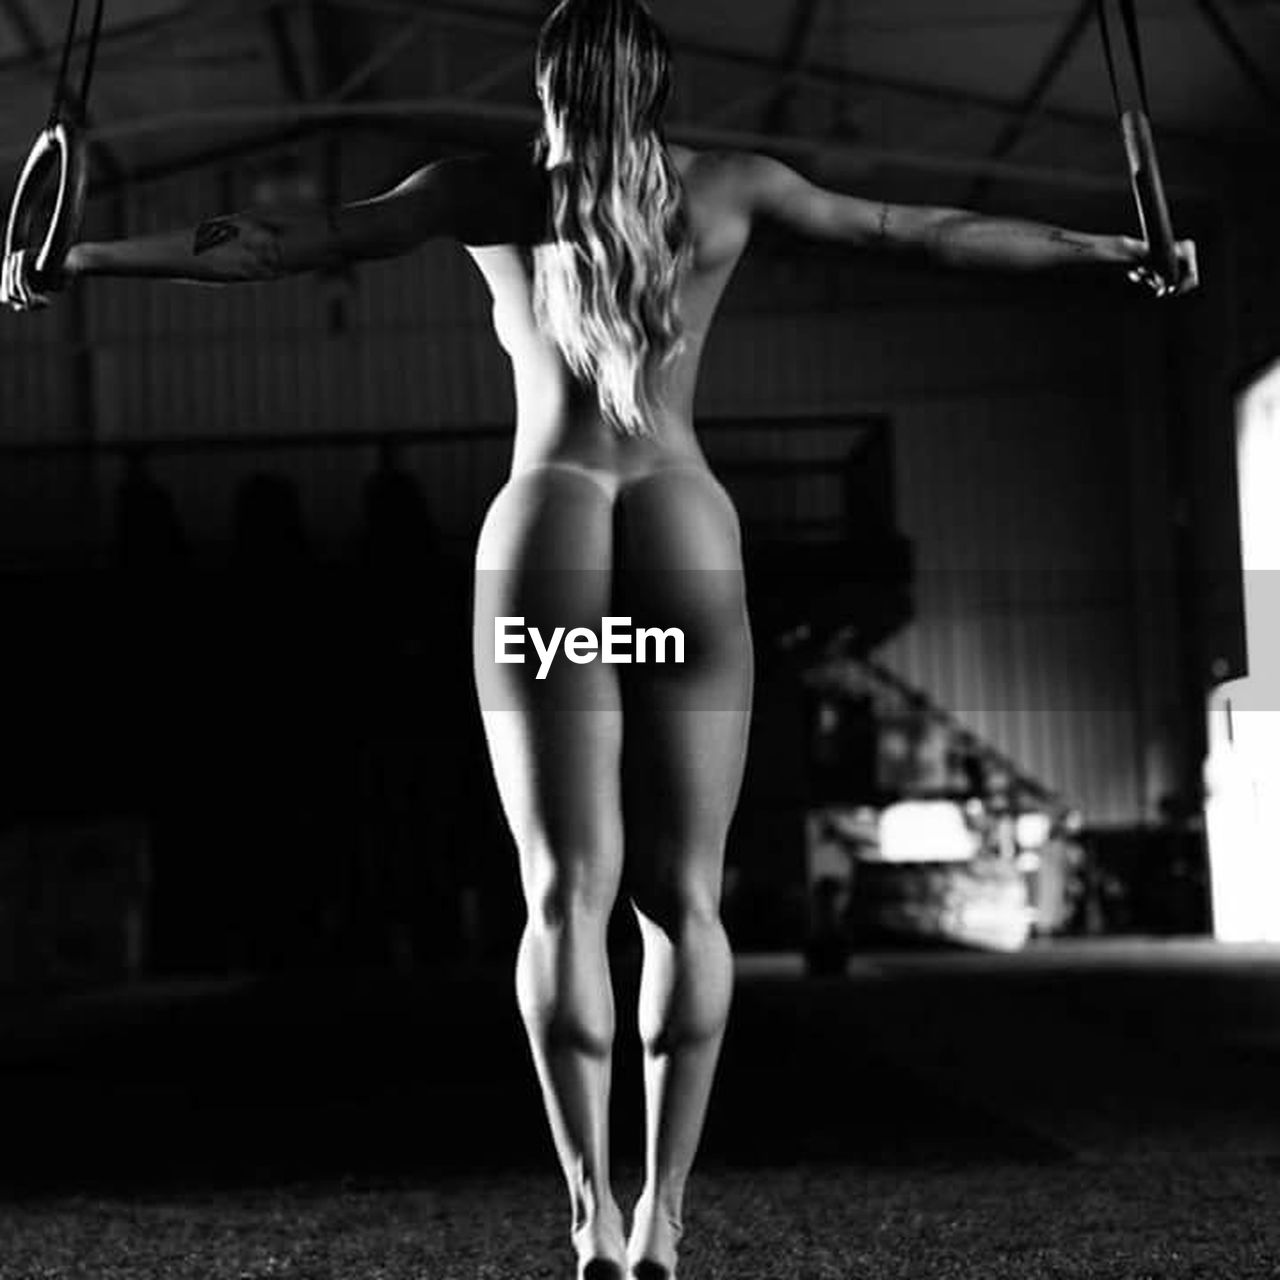 real people, rear view, one person, balance, skill, focus on foreground, flexibility, standing, ballet, indoors, lifestyles, practicing, strength, ballet dancer, young adult, legs apart, full length, women, muscular build, human back, sports clothing, back, day, athlete, adult, people, adults only